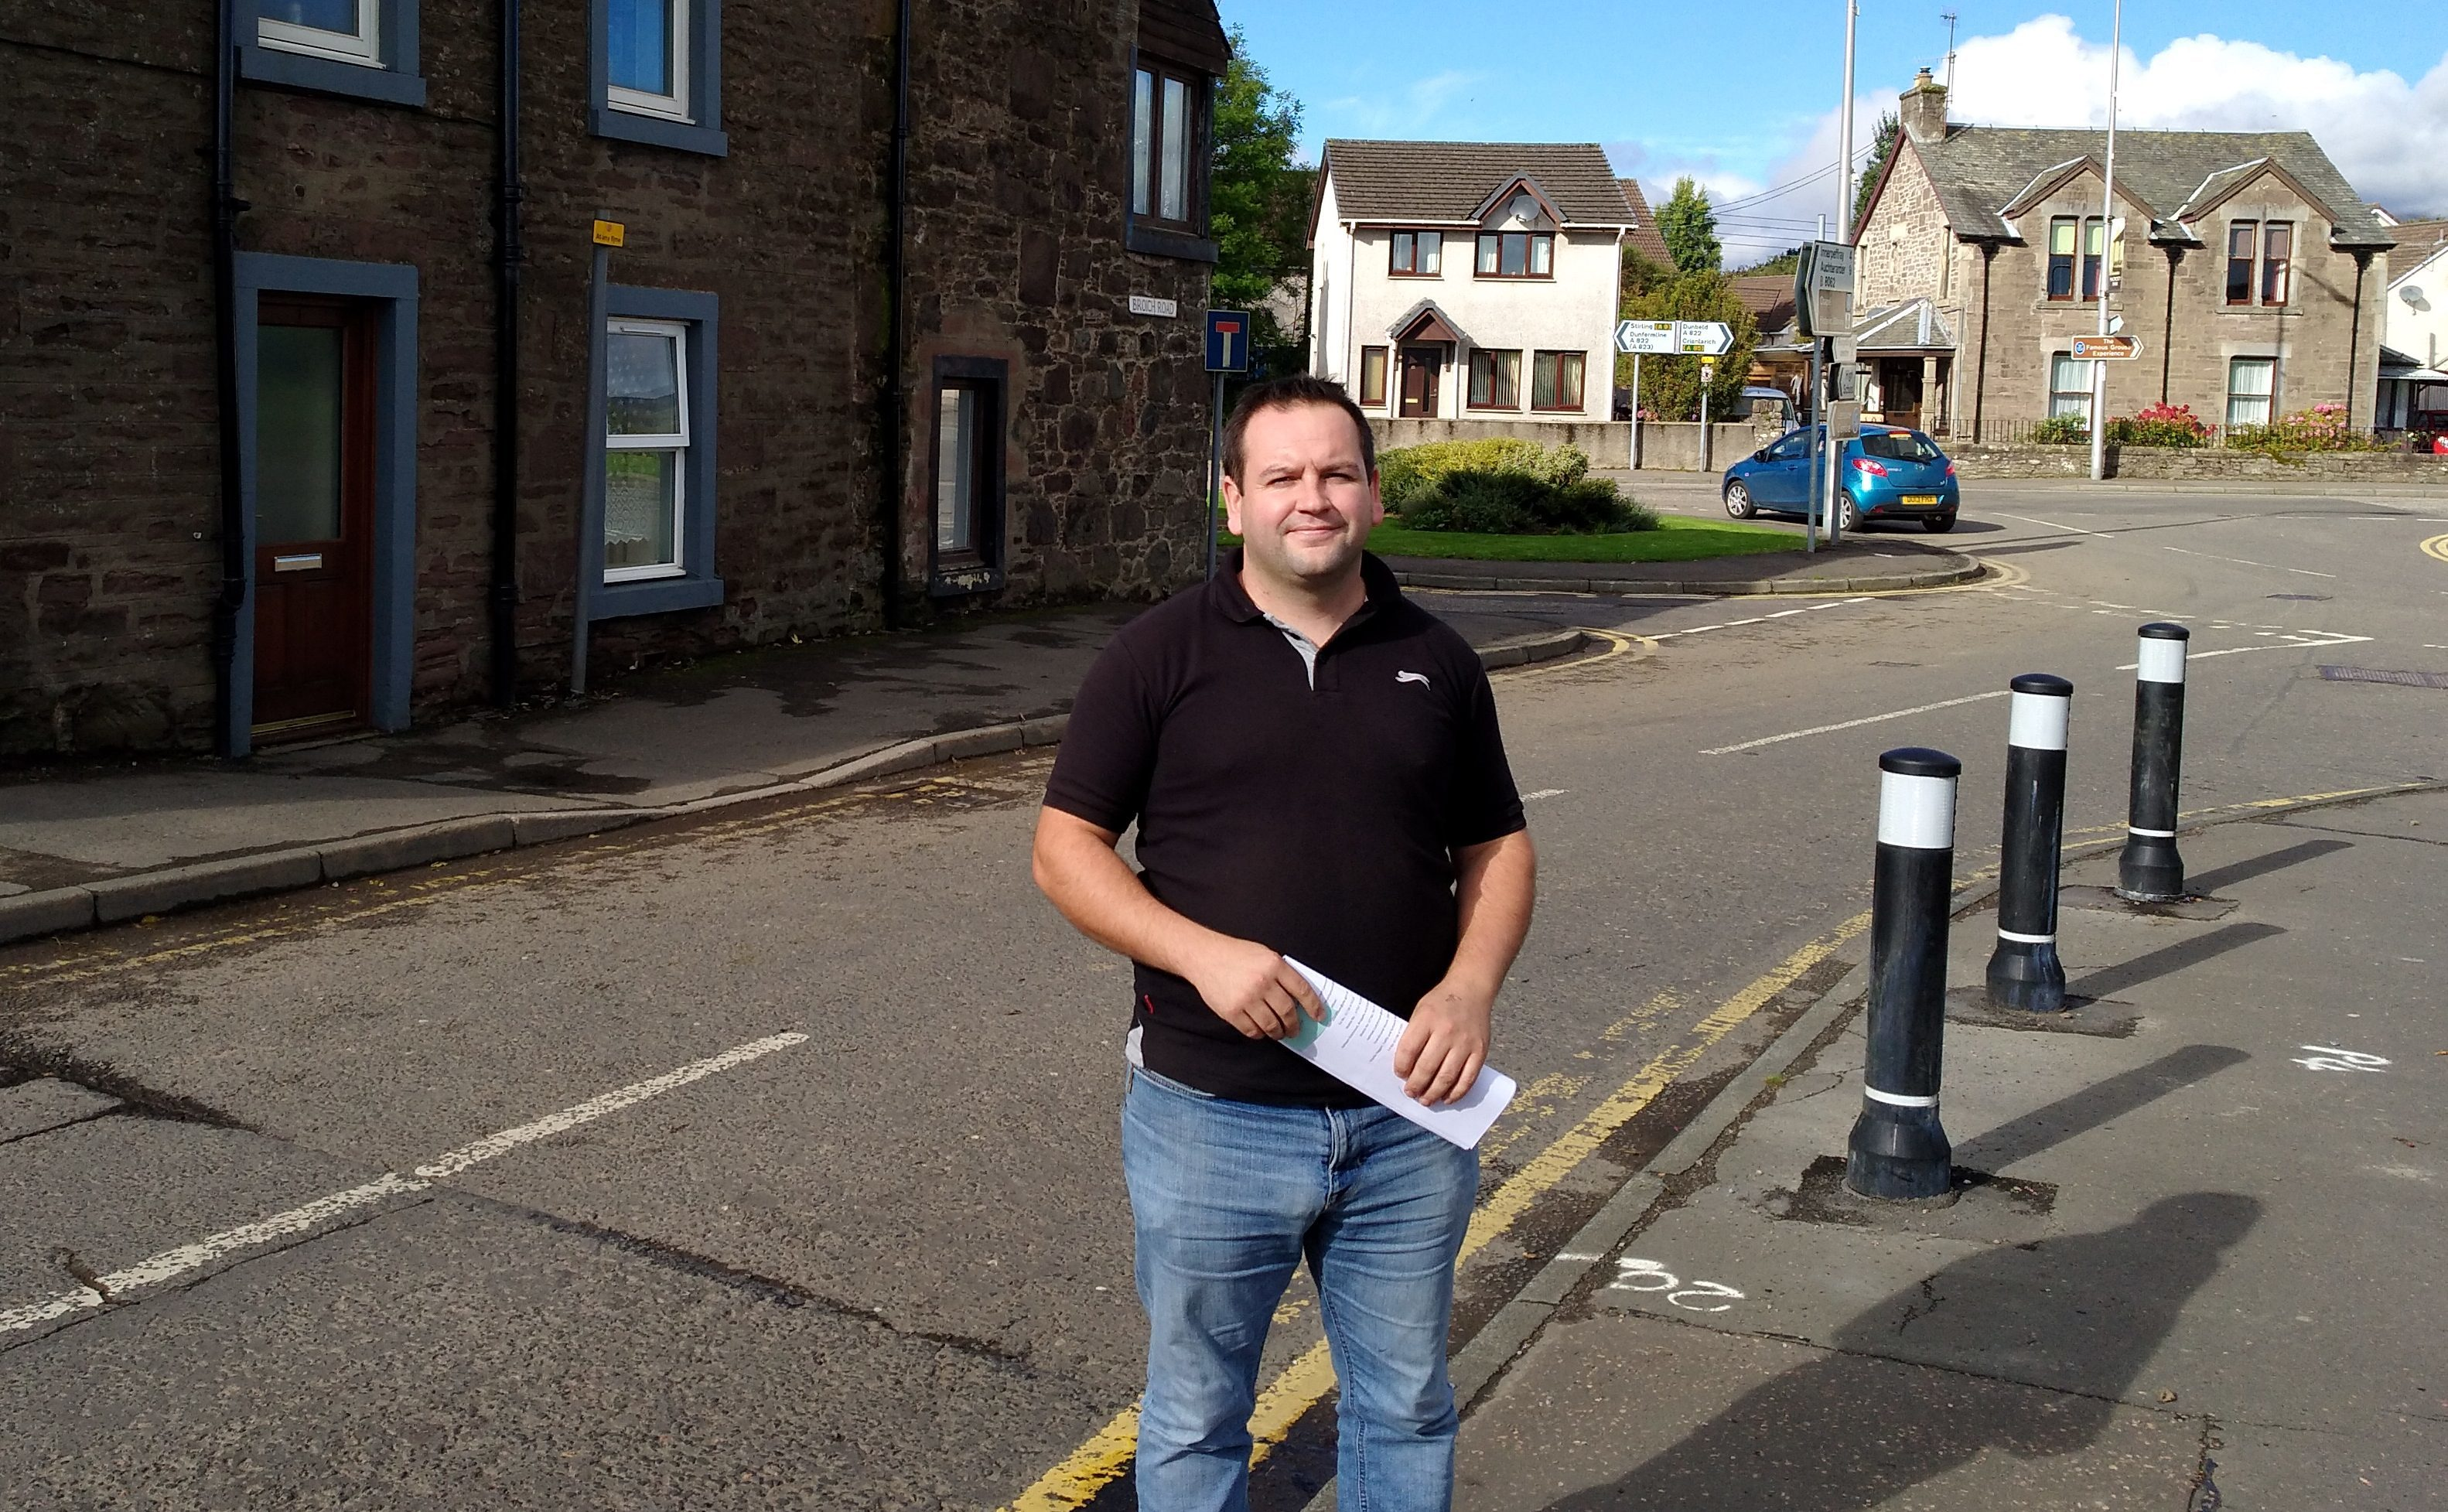 Mr Finlay at the junction of Broich Road and King Street, where he hopes significant changes will be made.